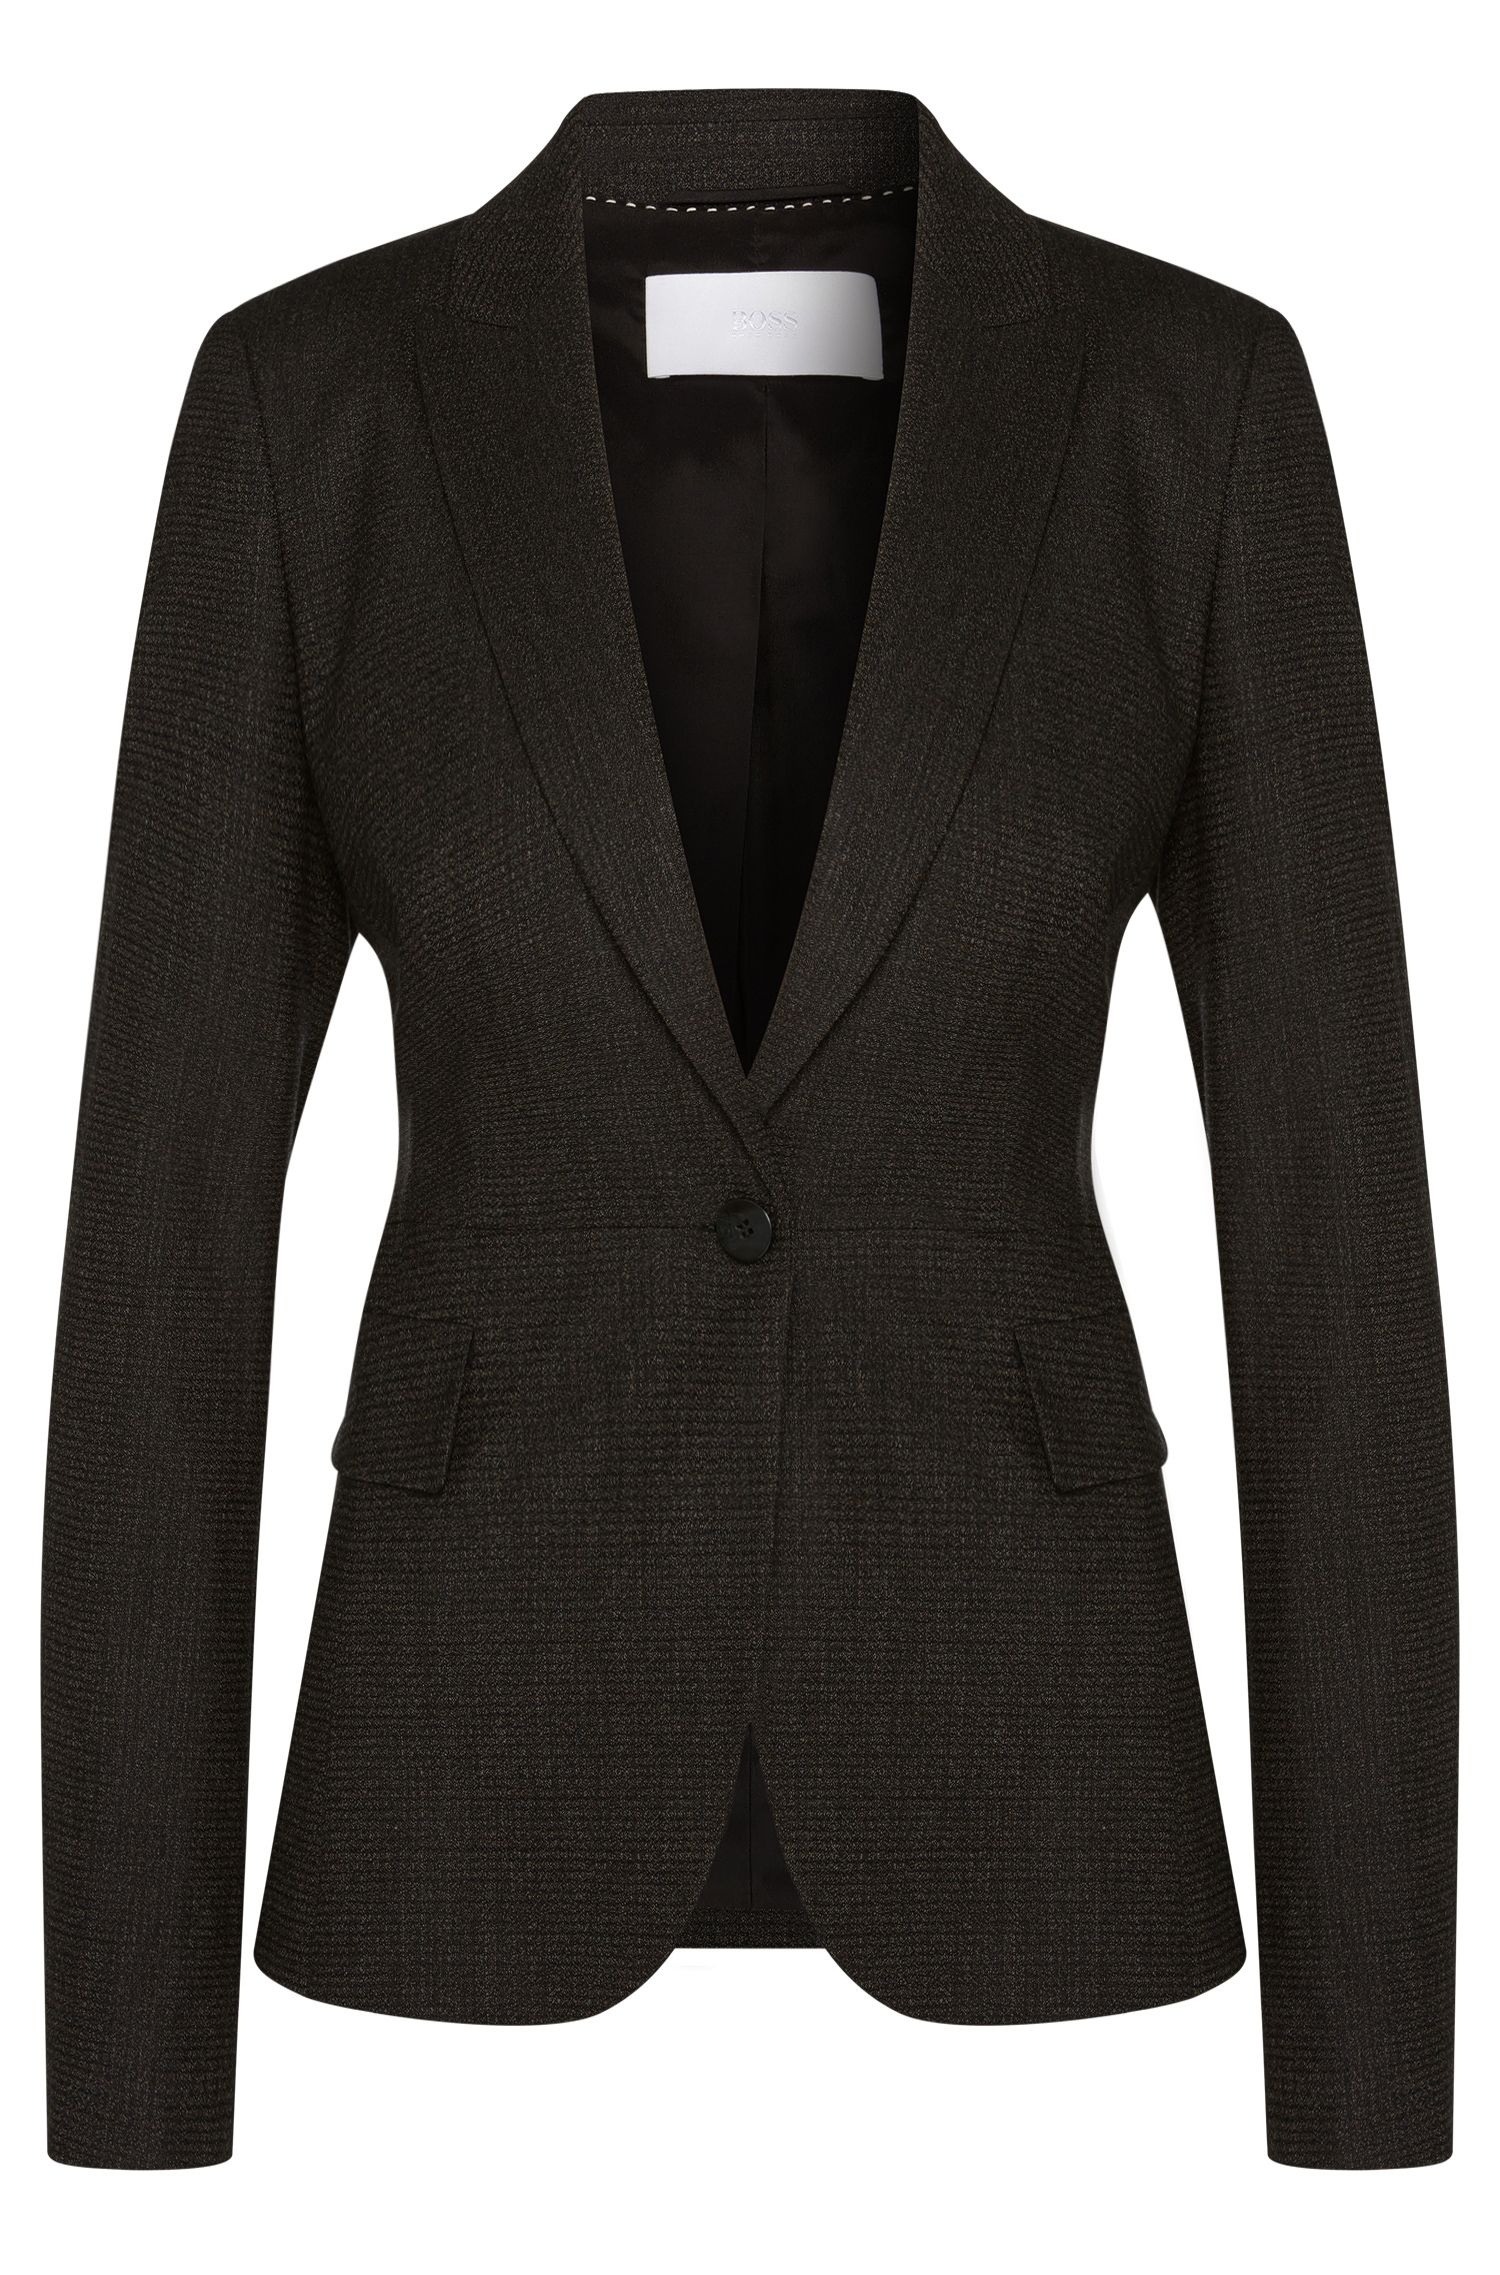 'Jiabina' | Stretch Virgin Wool Tweed Blazer